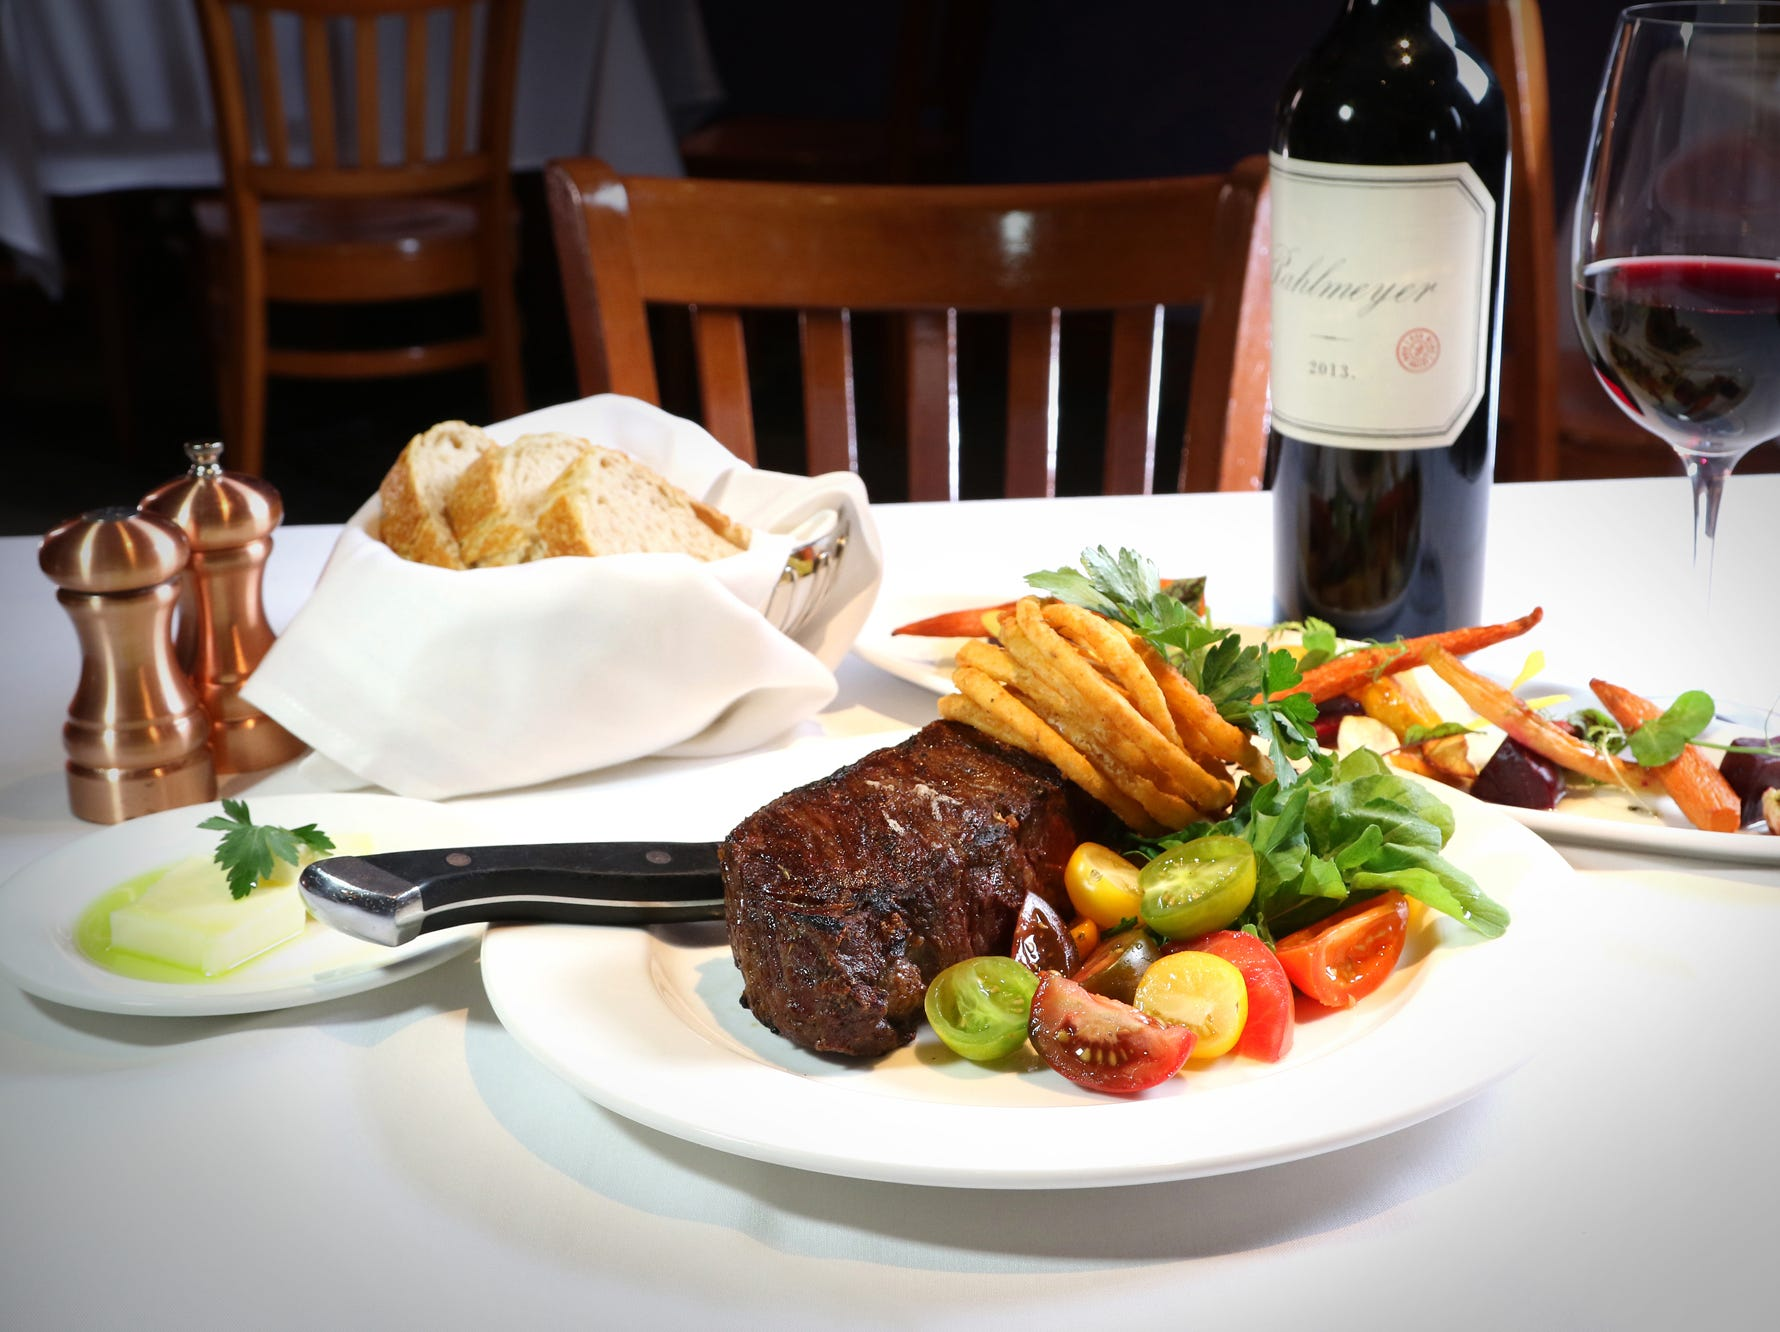 Chops City Grill in downtown Naples has half-off entrees and 20 percent off dry-aged steaks through Friday, Oct. 5.